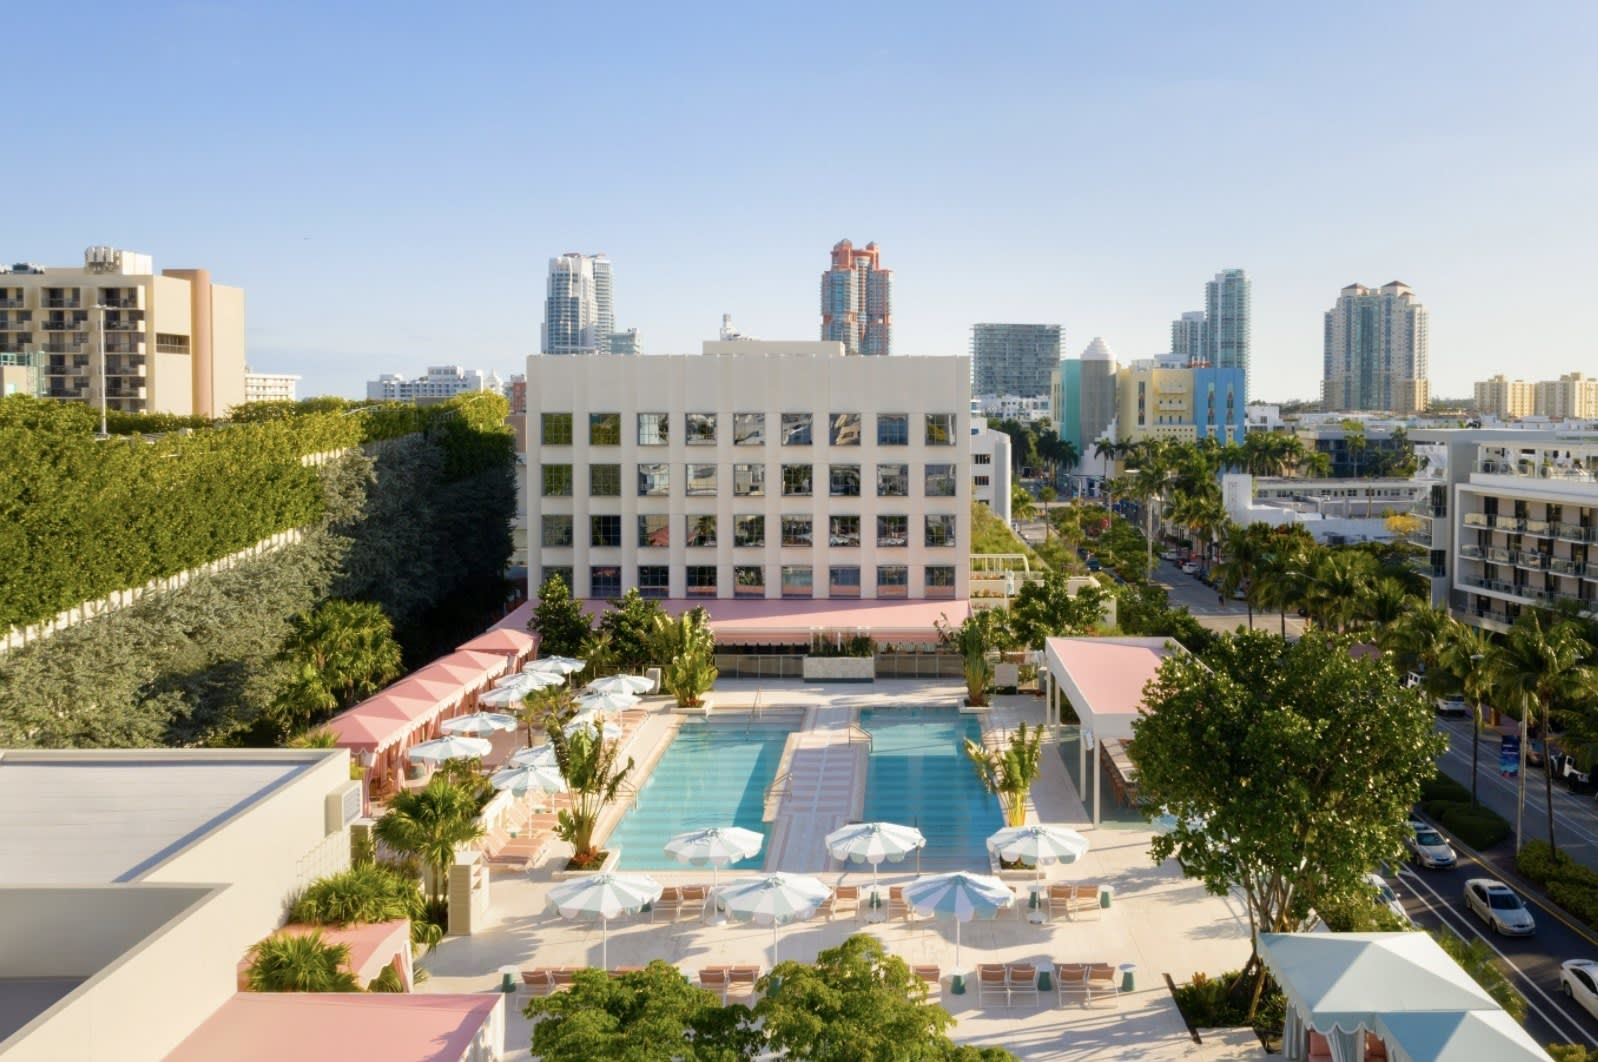 Announcing the Goodtime Hotel - A new hospitality endeavor between David Grutman and Pharrell Williams opens on South Beach